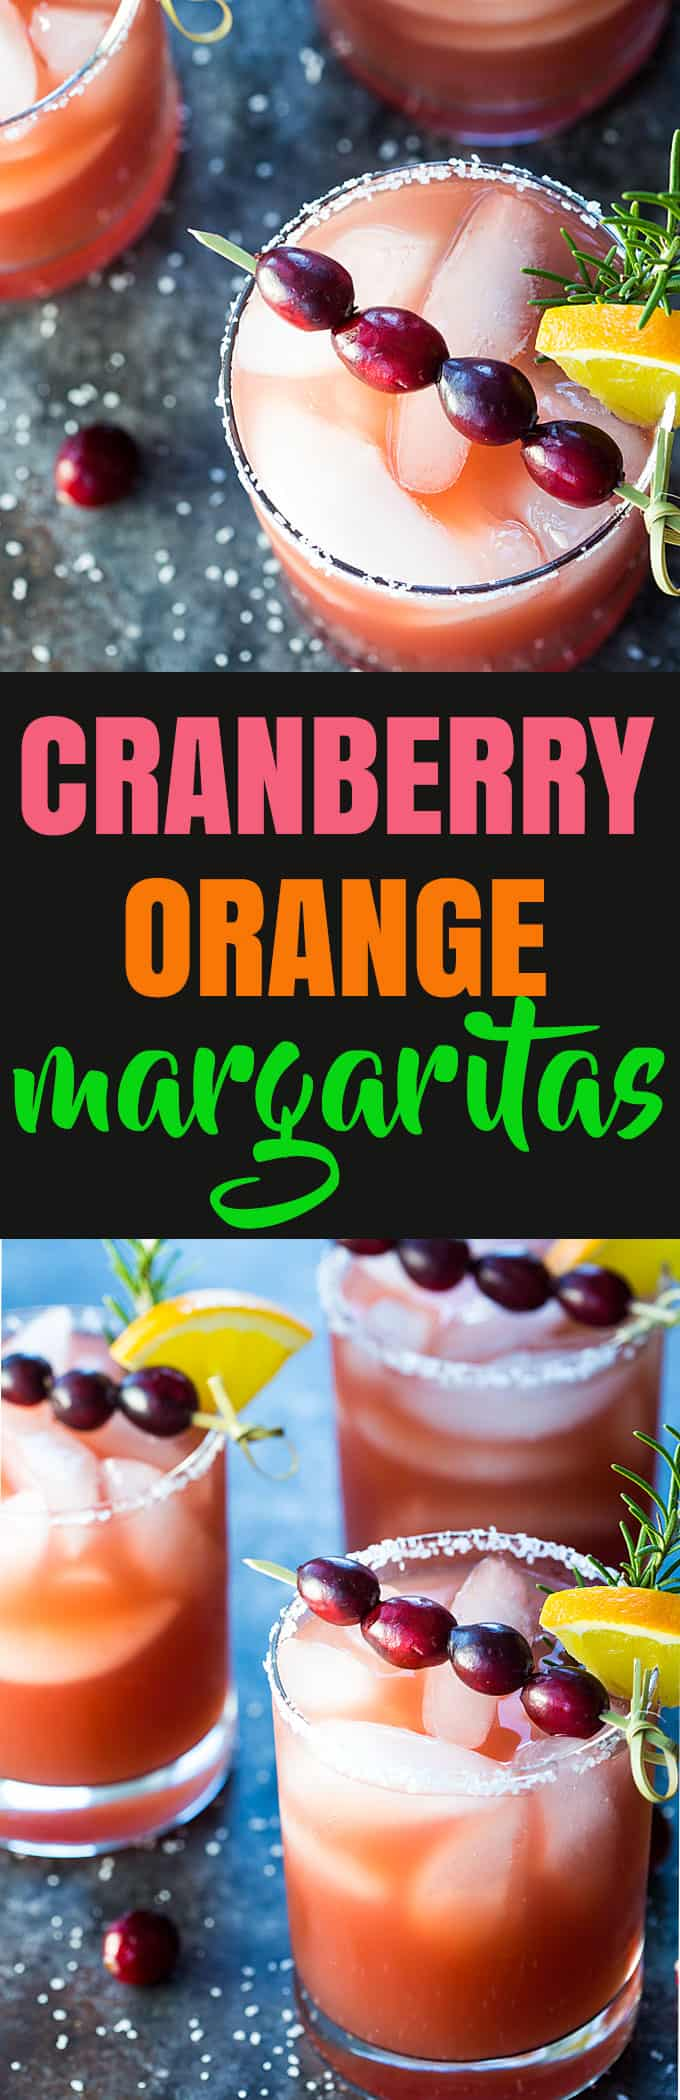 A two image vertical collage of cranberry orange margaritas with overlay text in the center.